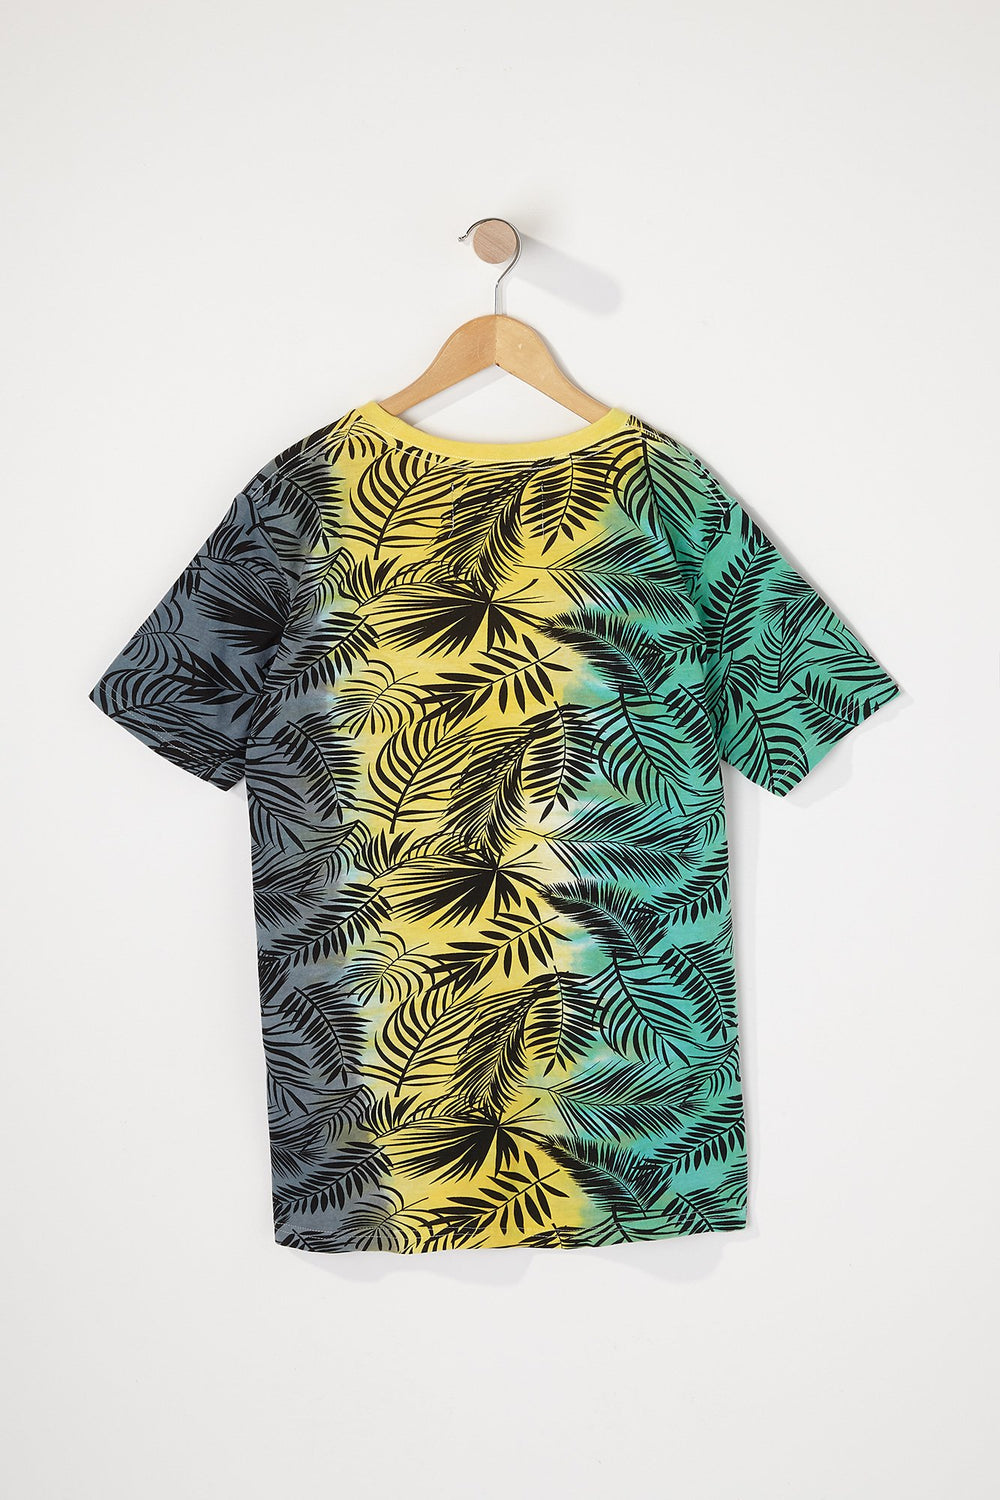 West49 Boys Tie-Dye Palm Tree T-Shirt Navy